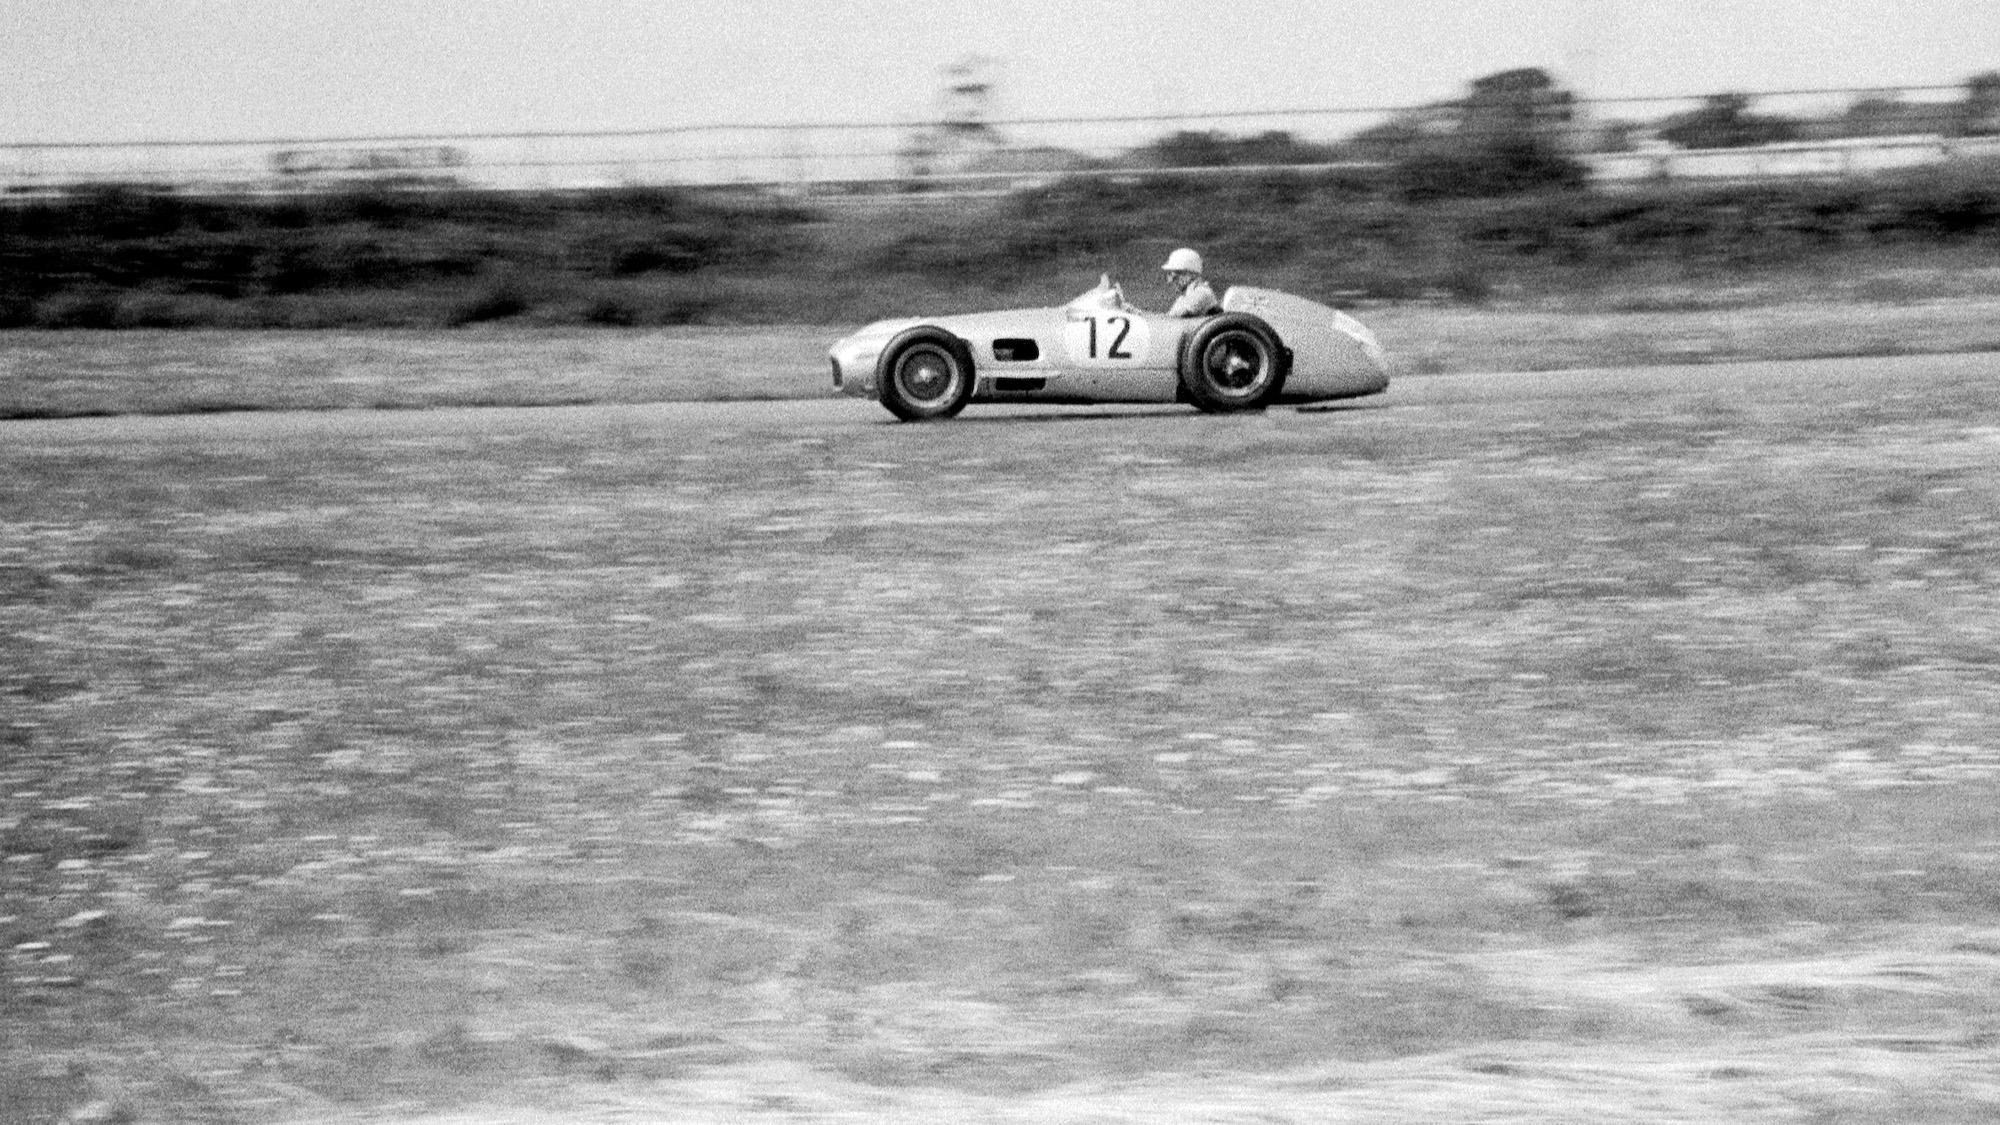 Side view of Stirling Moss during the 1955 F1 British Grand Prix at Aintree